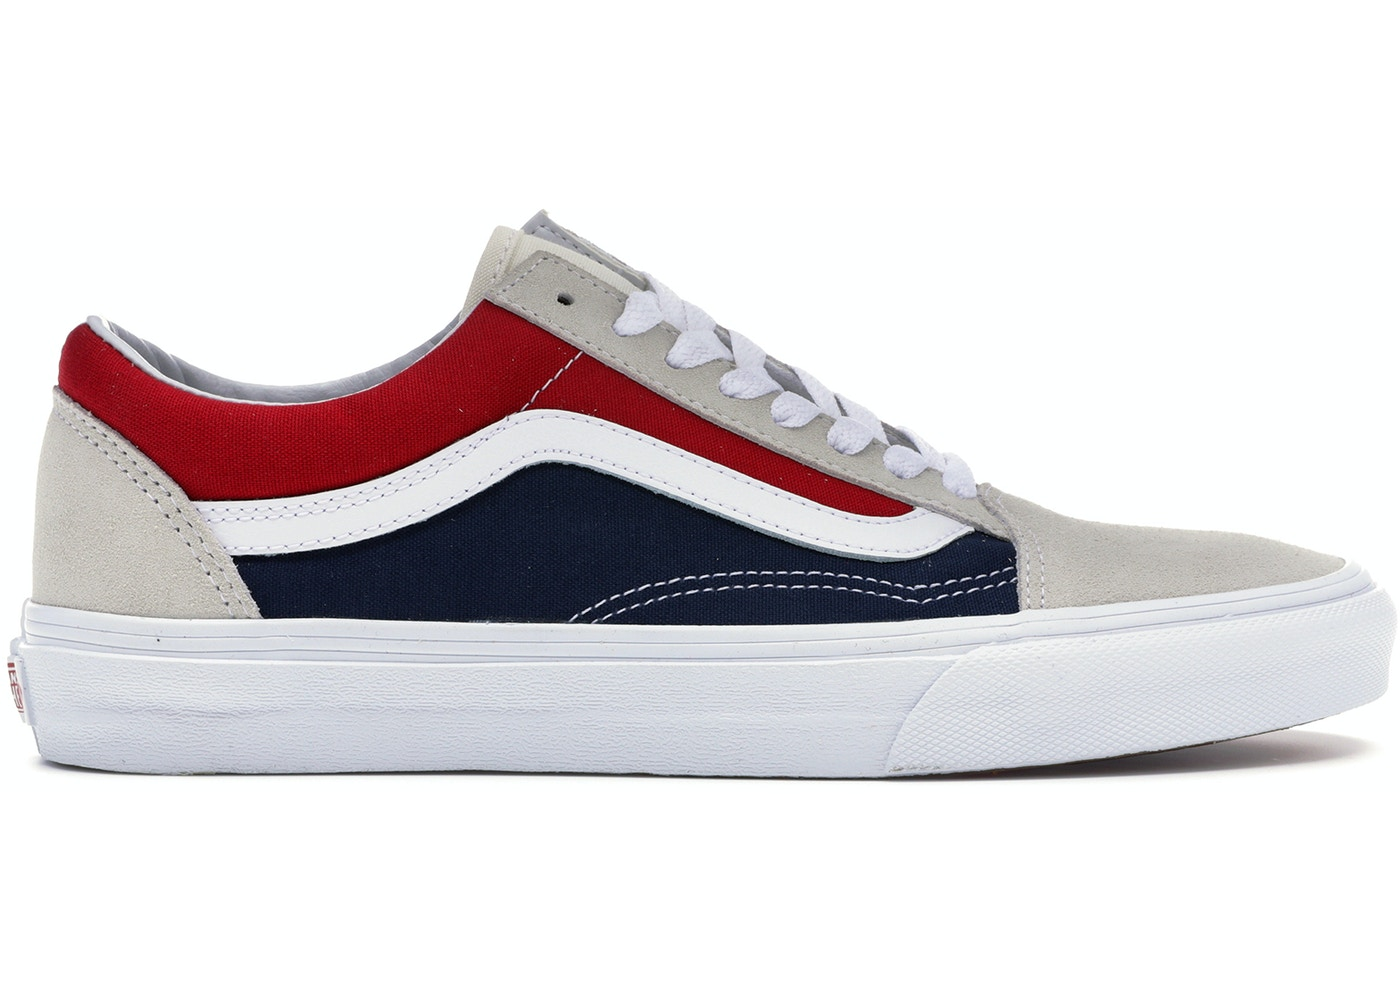 30b186bcff986b Vans Footwear - Buy Deadstock Sneakers